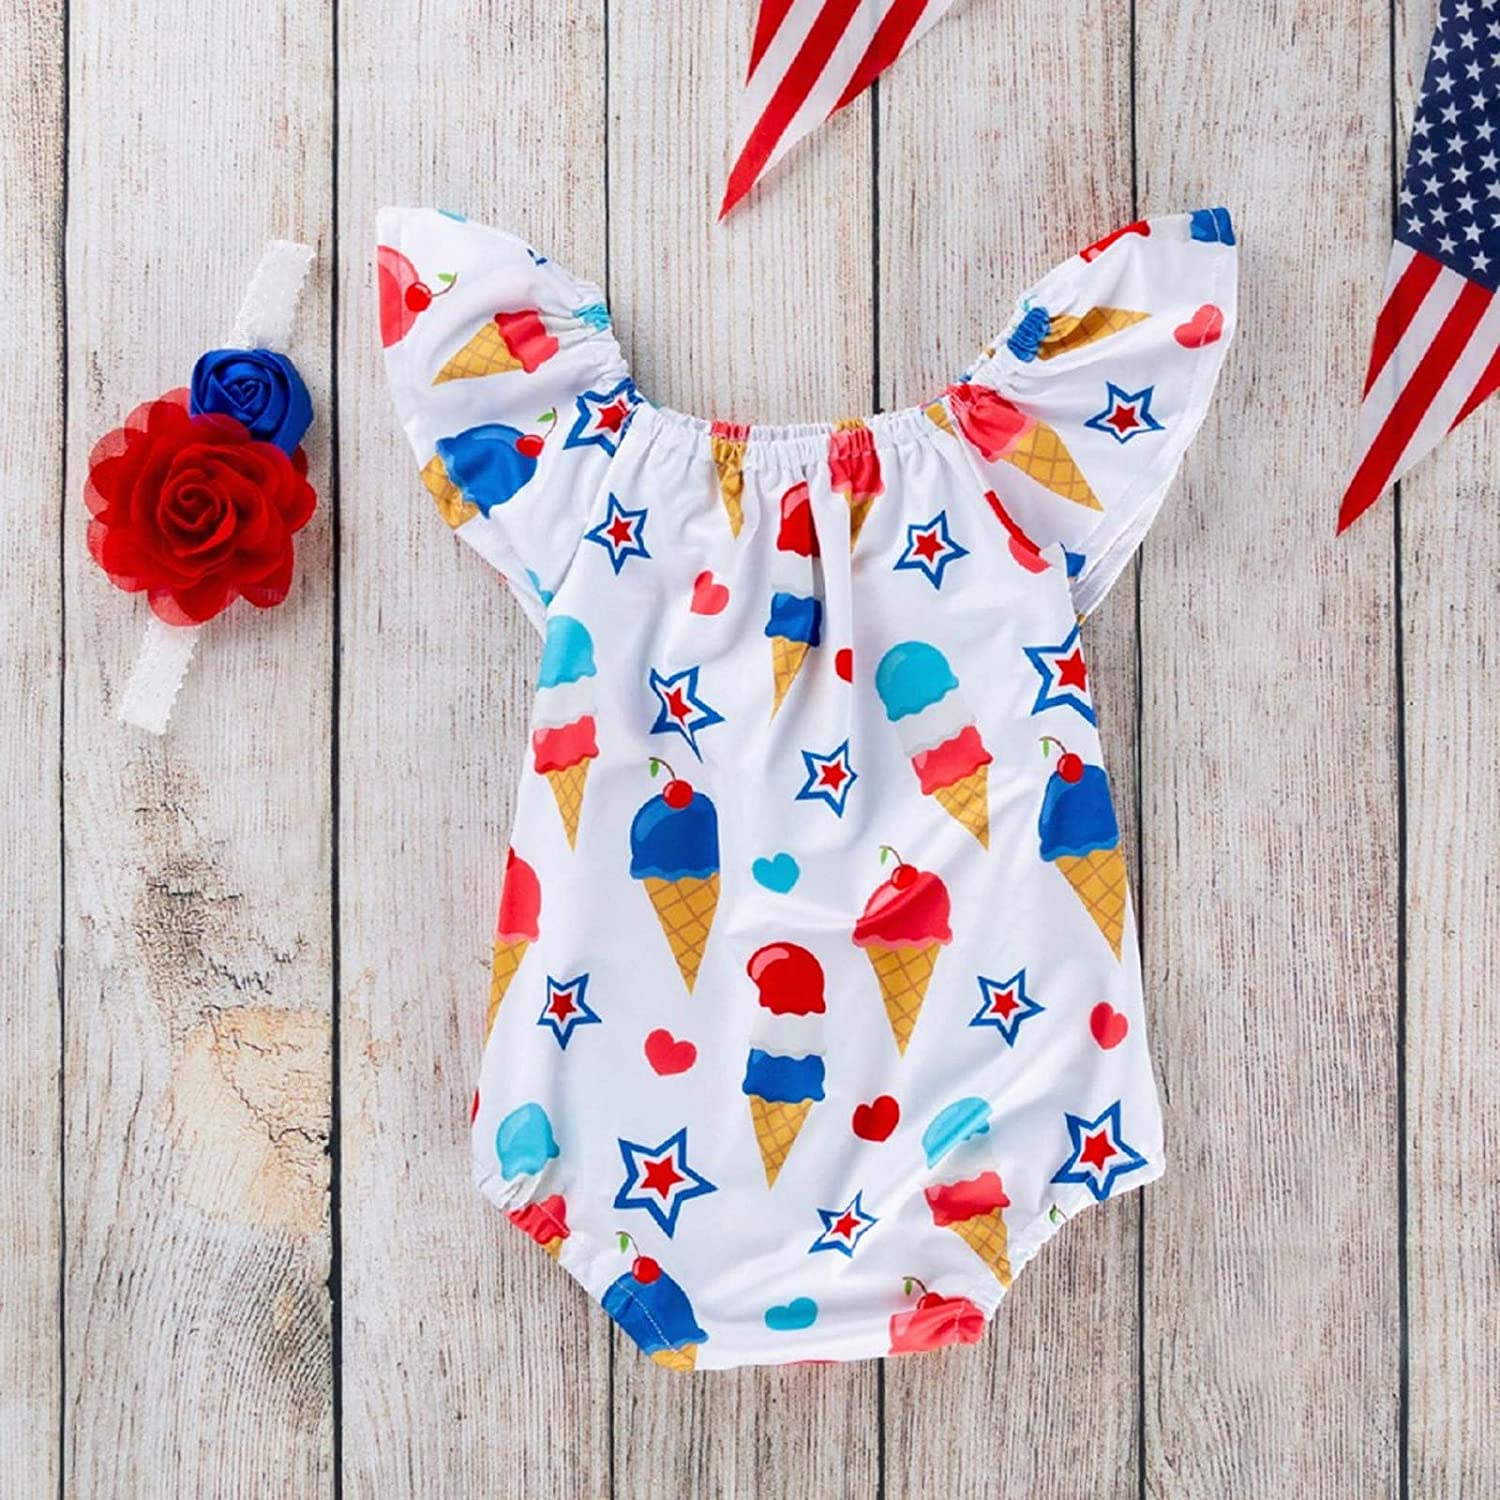 baskuwish Cute Toddler Kids Baby Girl Clothes Sister Match Outfits Big Sister Hooded Sweatshirt Little Sister Flowers Romper